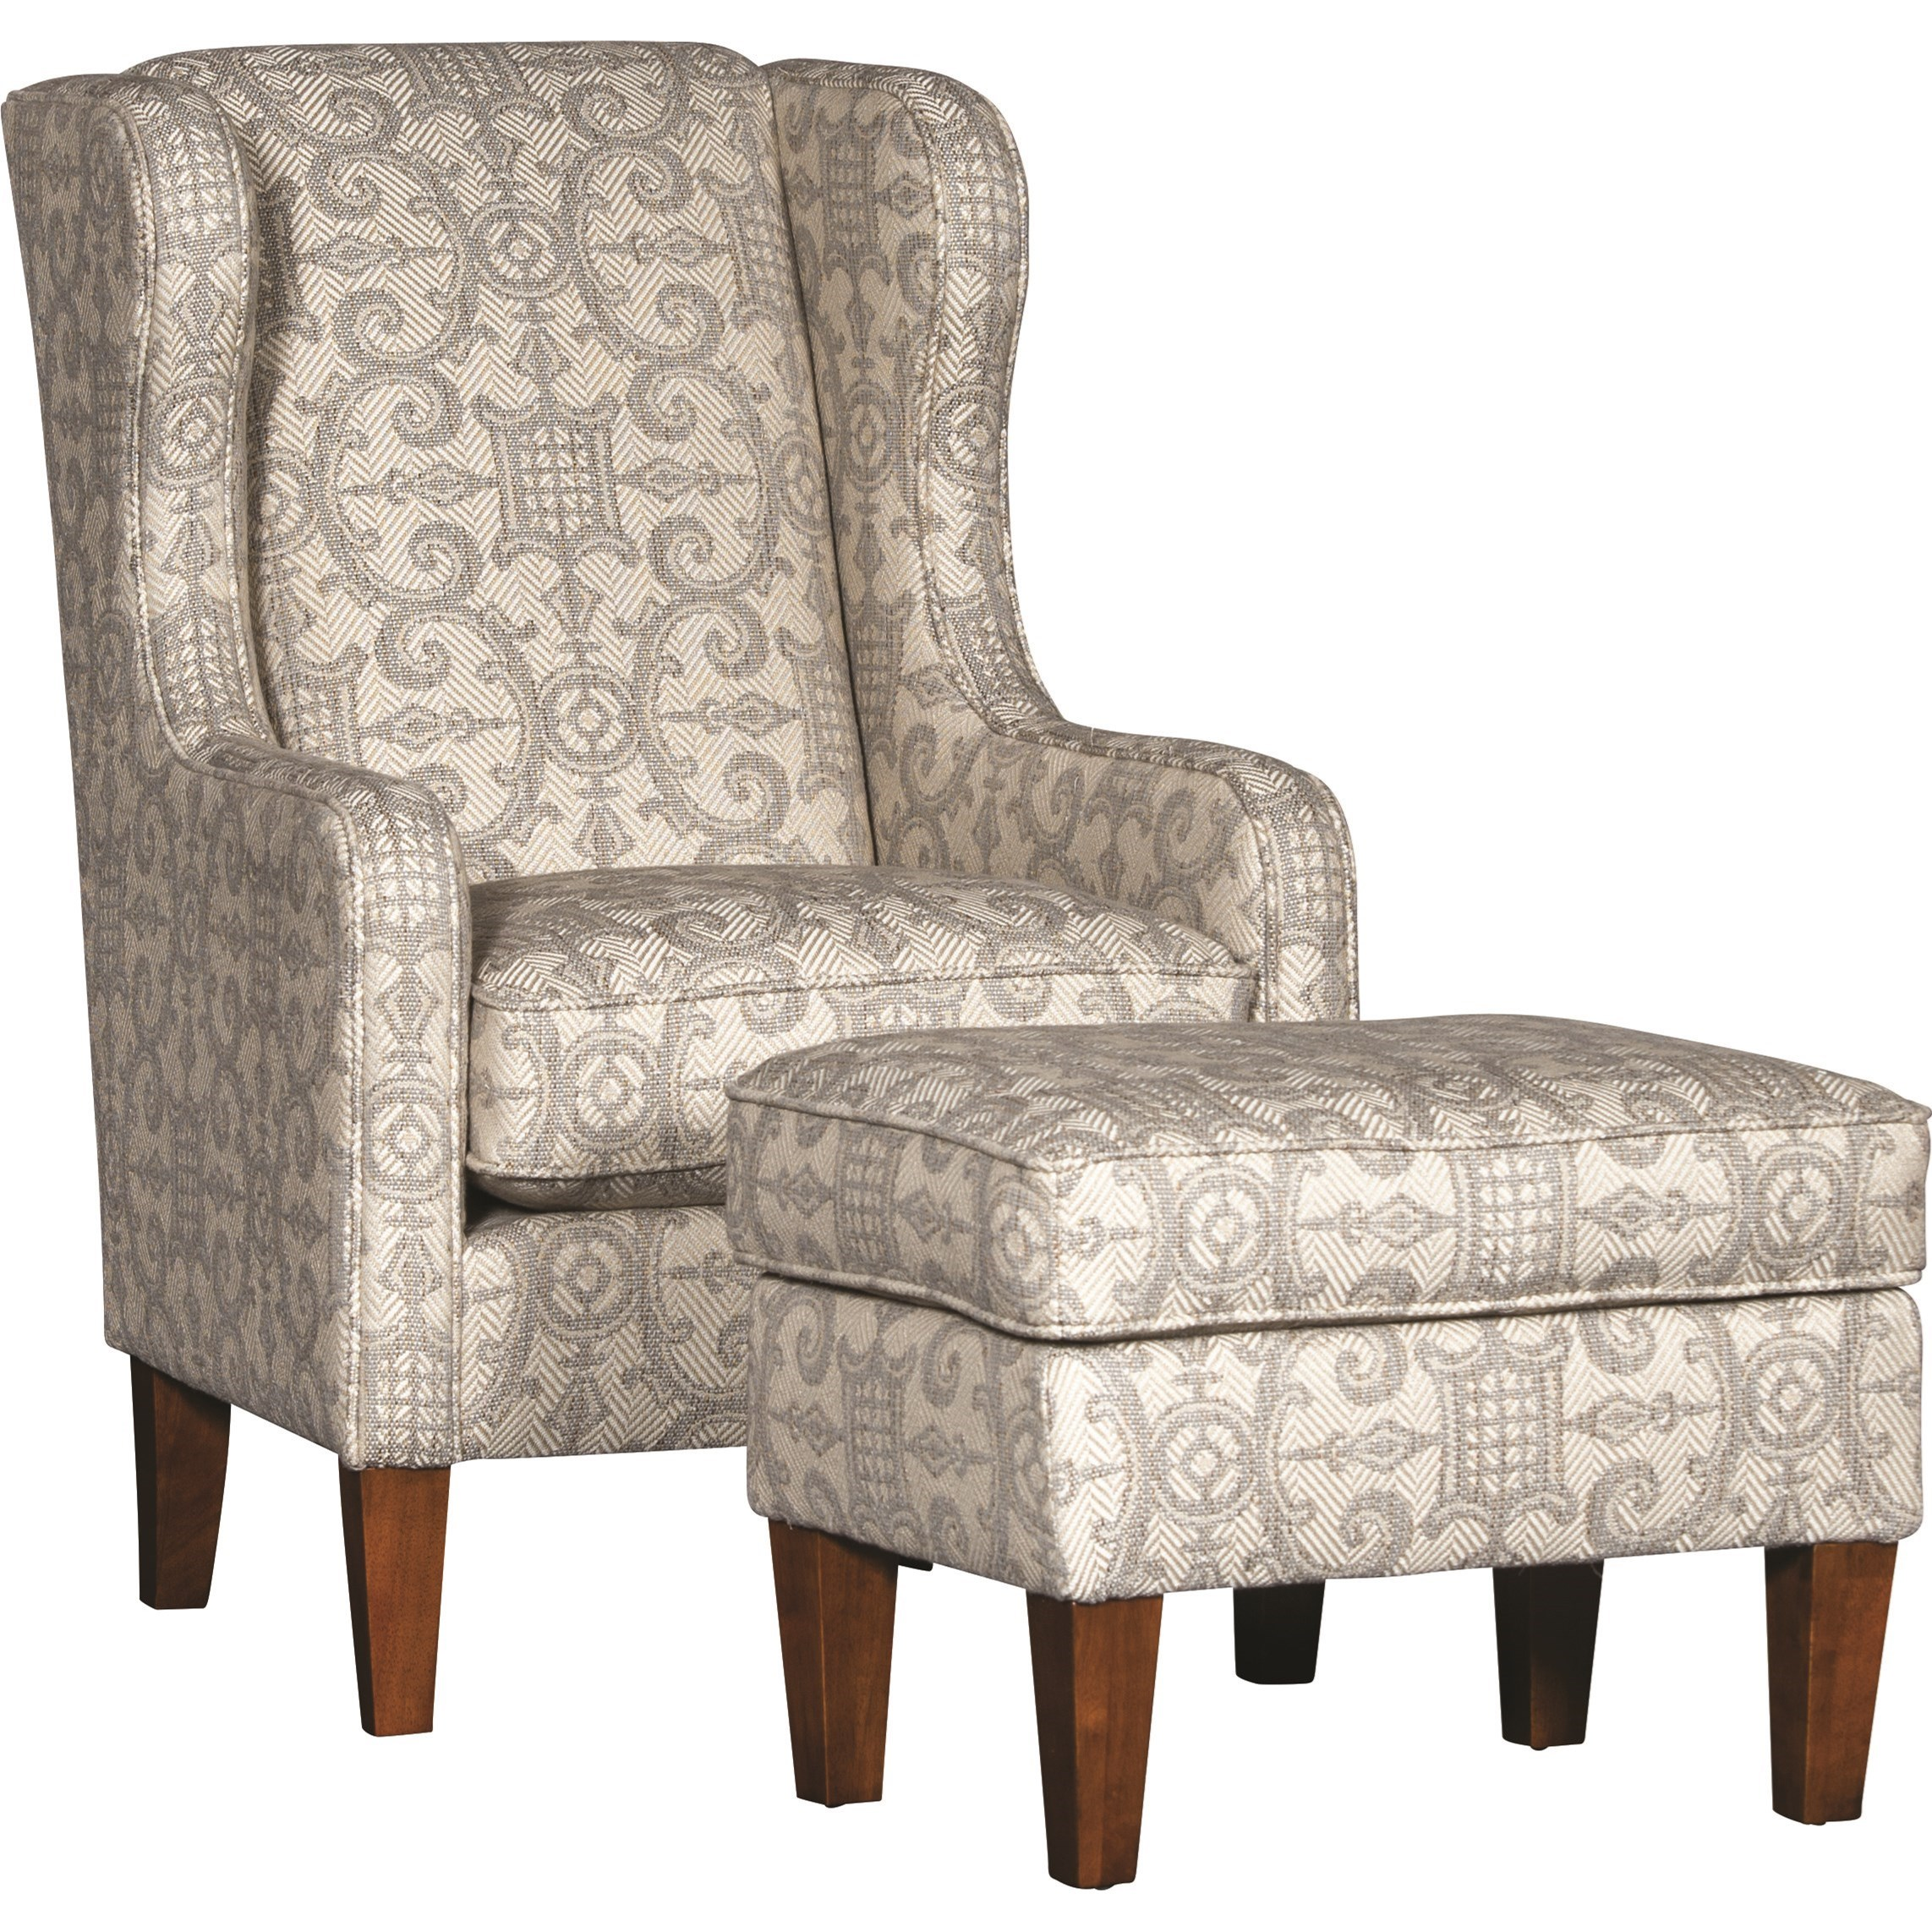 5520 Chair and Ottoman by Mayo at Wilson's Furniture